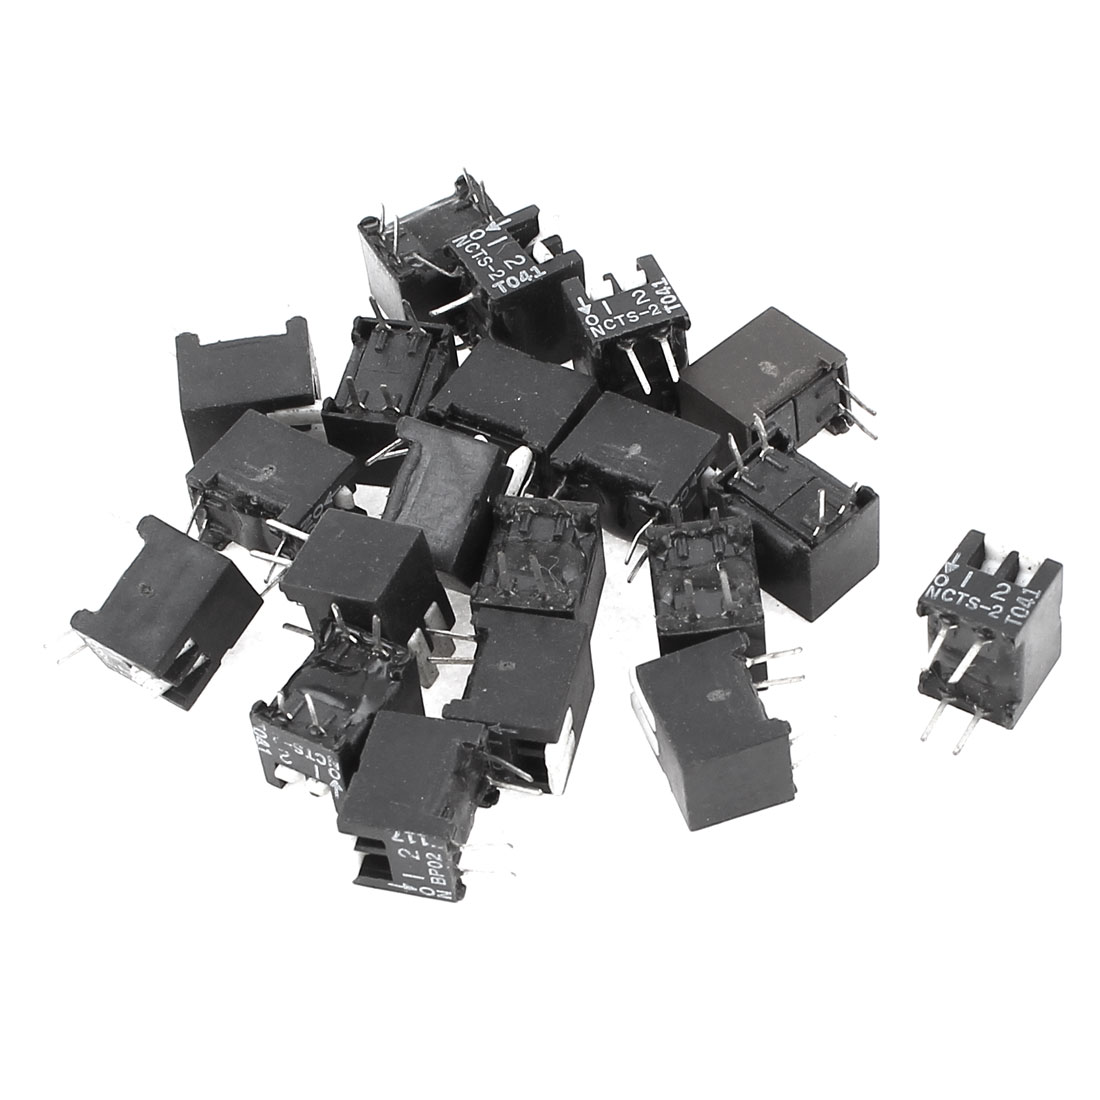 20 Pcs 4 Pins 2 Positions Way Sliding Type Switches 2.54mm Pitch Black